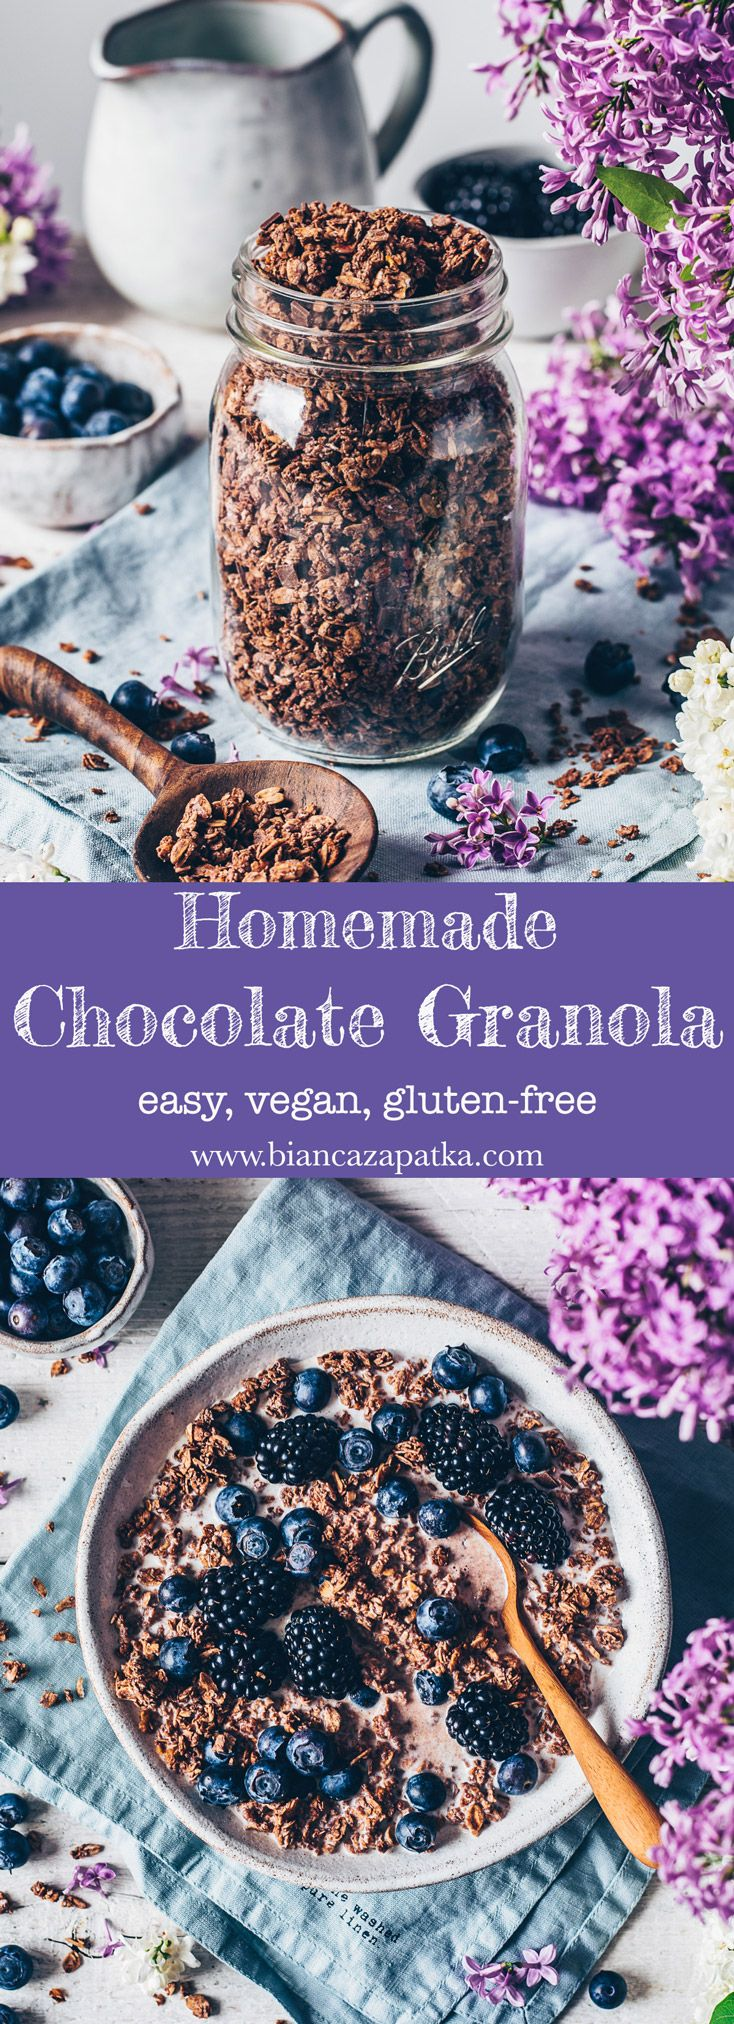 Chocolate Granola Recipe – easy, vegan, Homemade